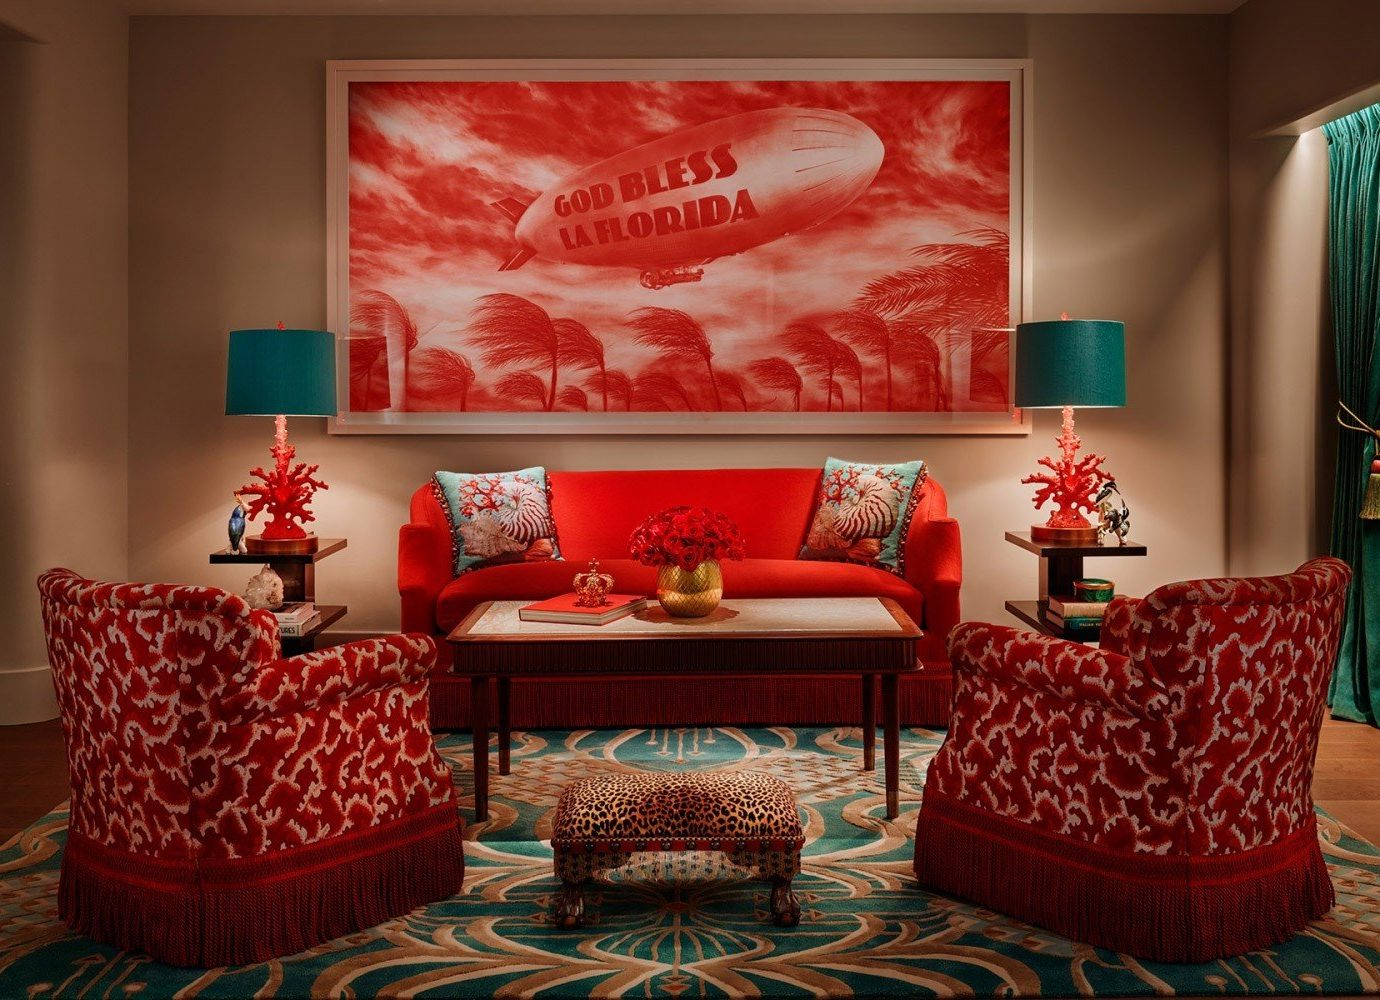 Hotels wall indoor room living room red Living interior design modern art home Design bed sheet Suite area decorated furniture